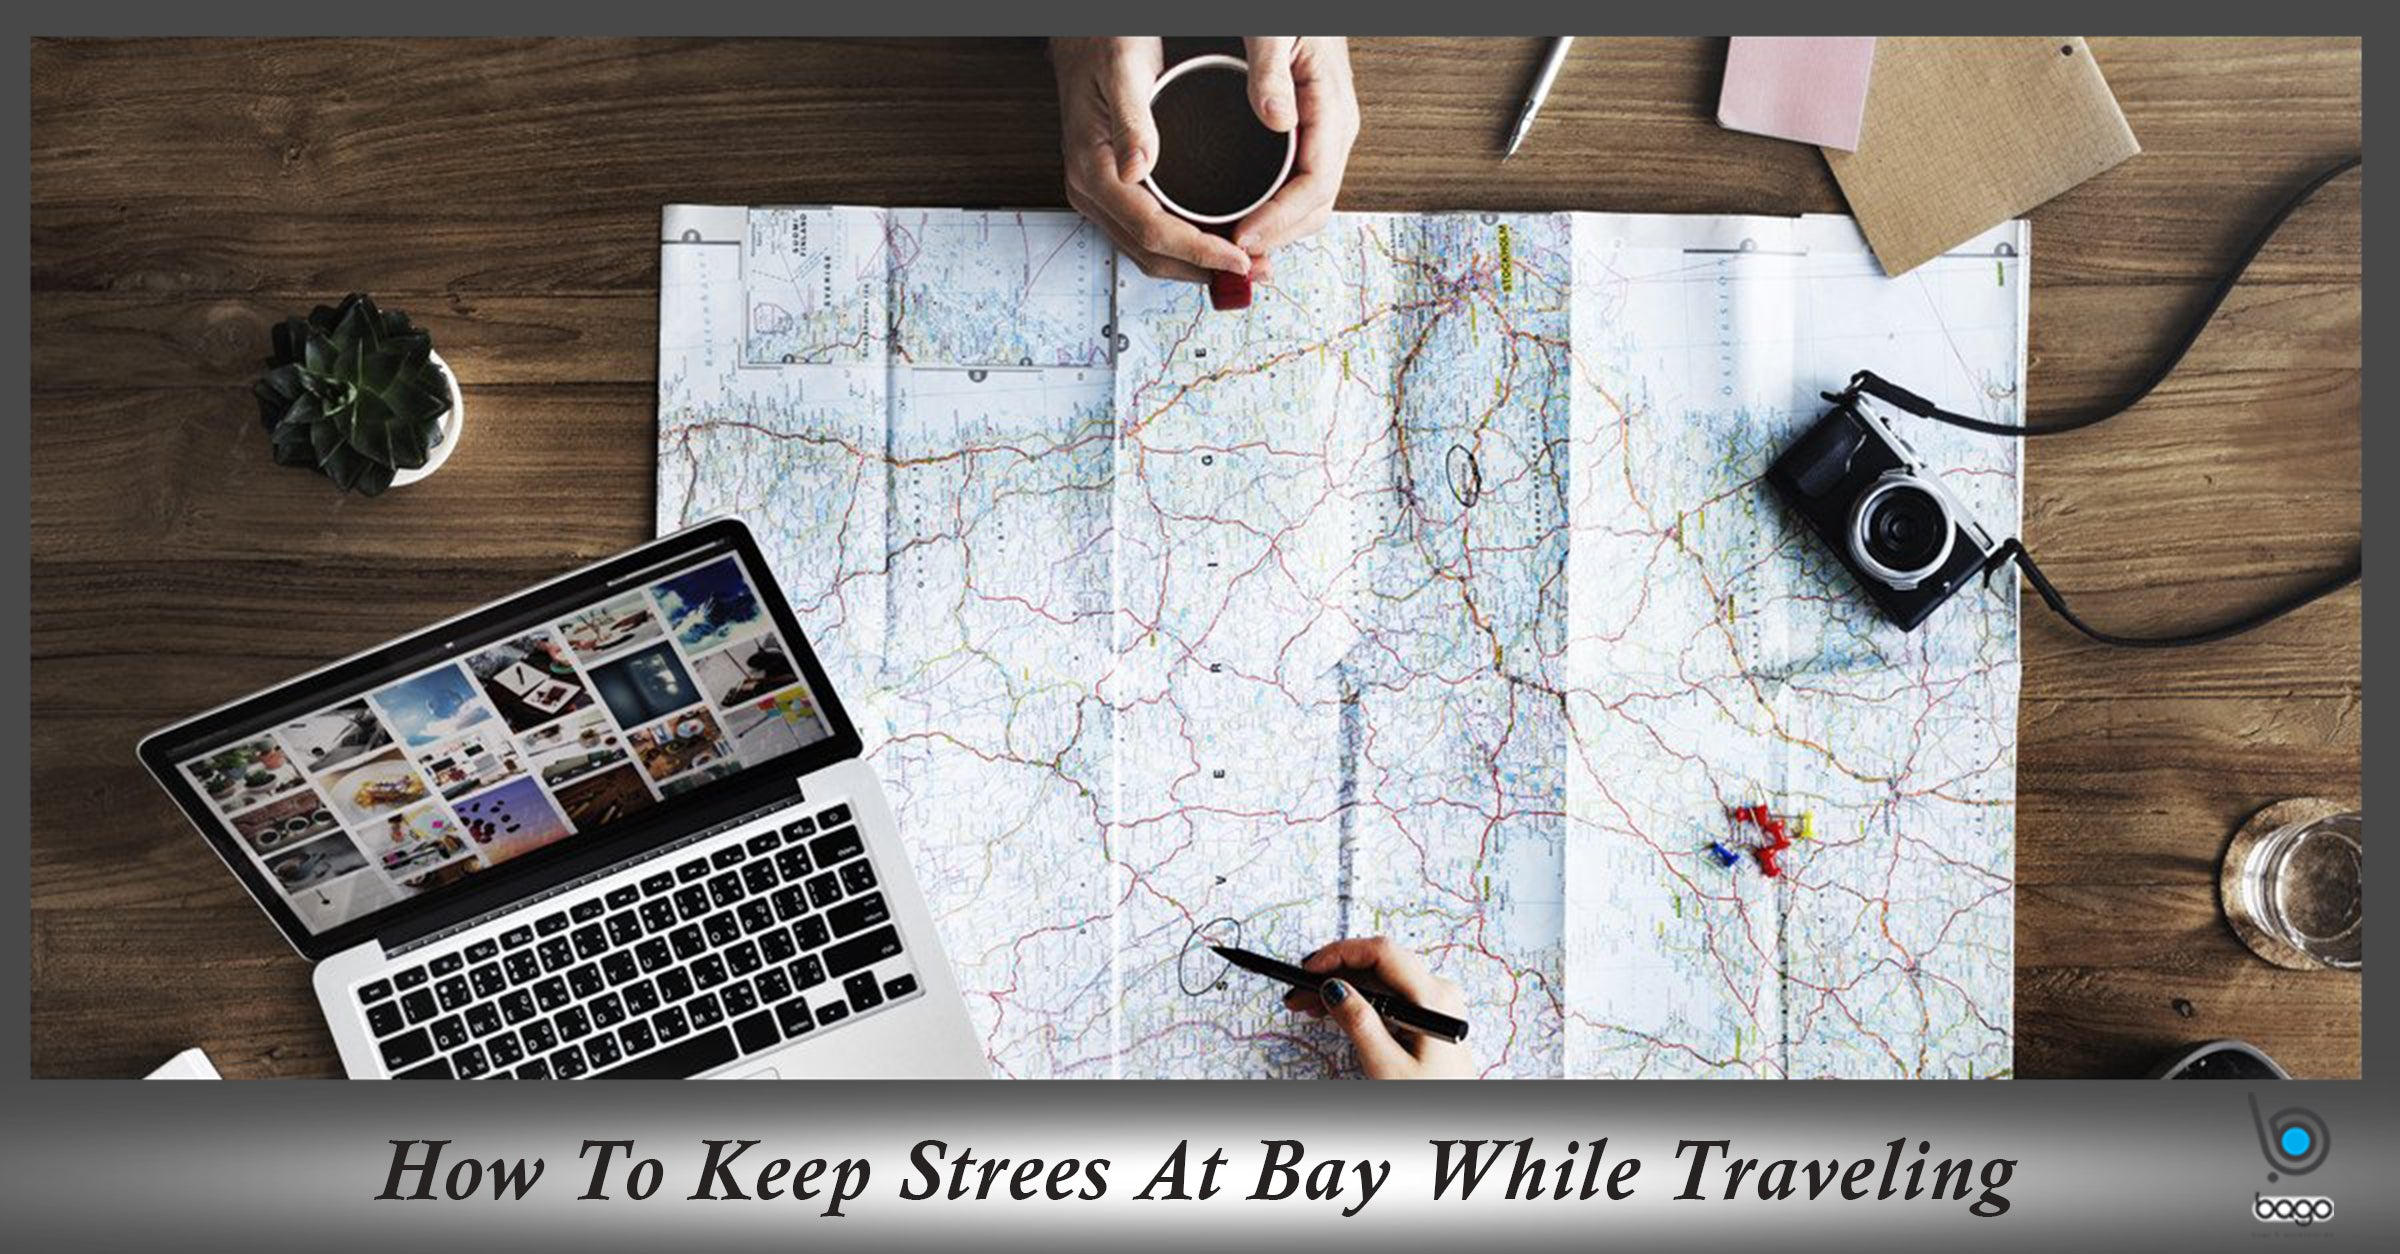 How To Keep Stress At Bay While Traveling